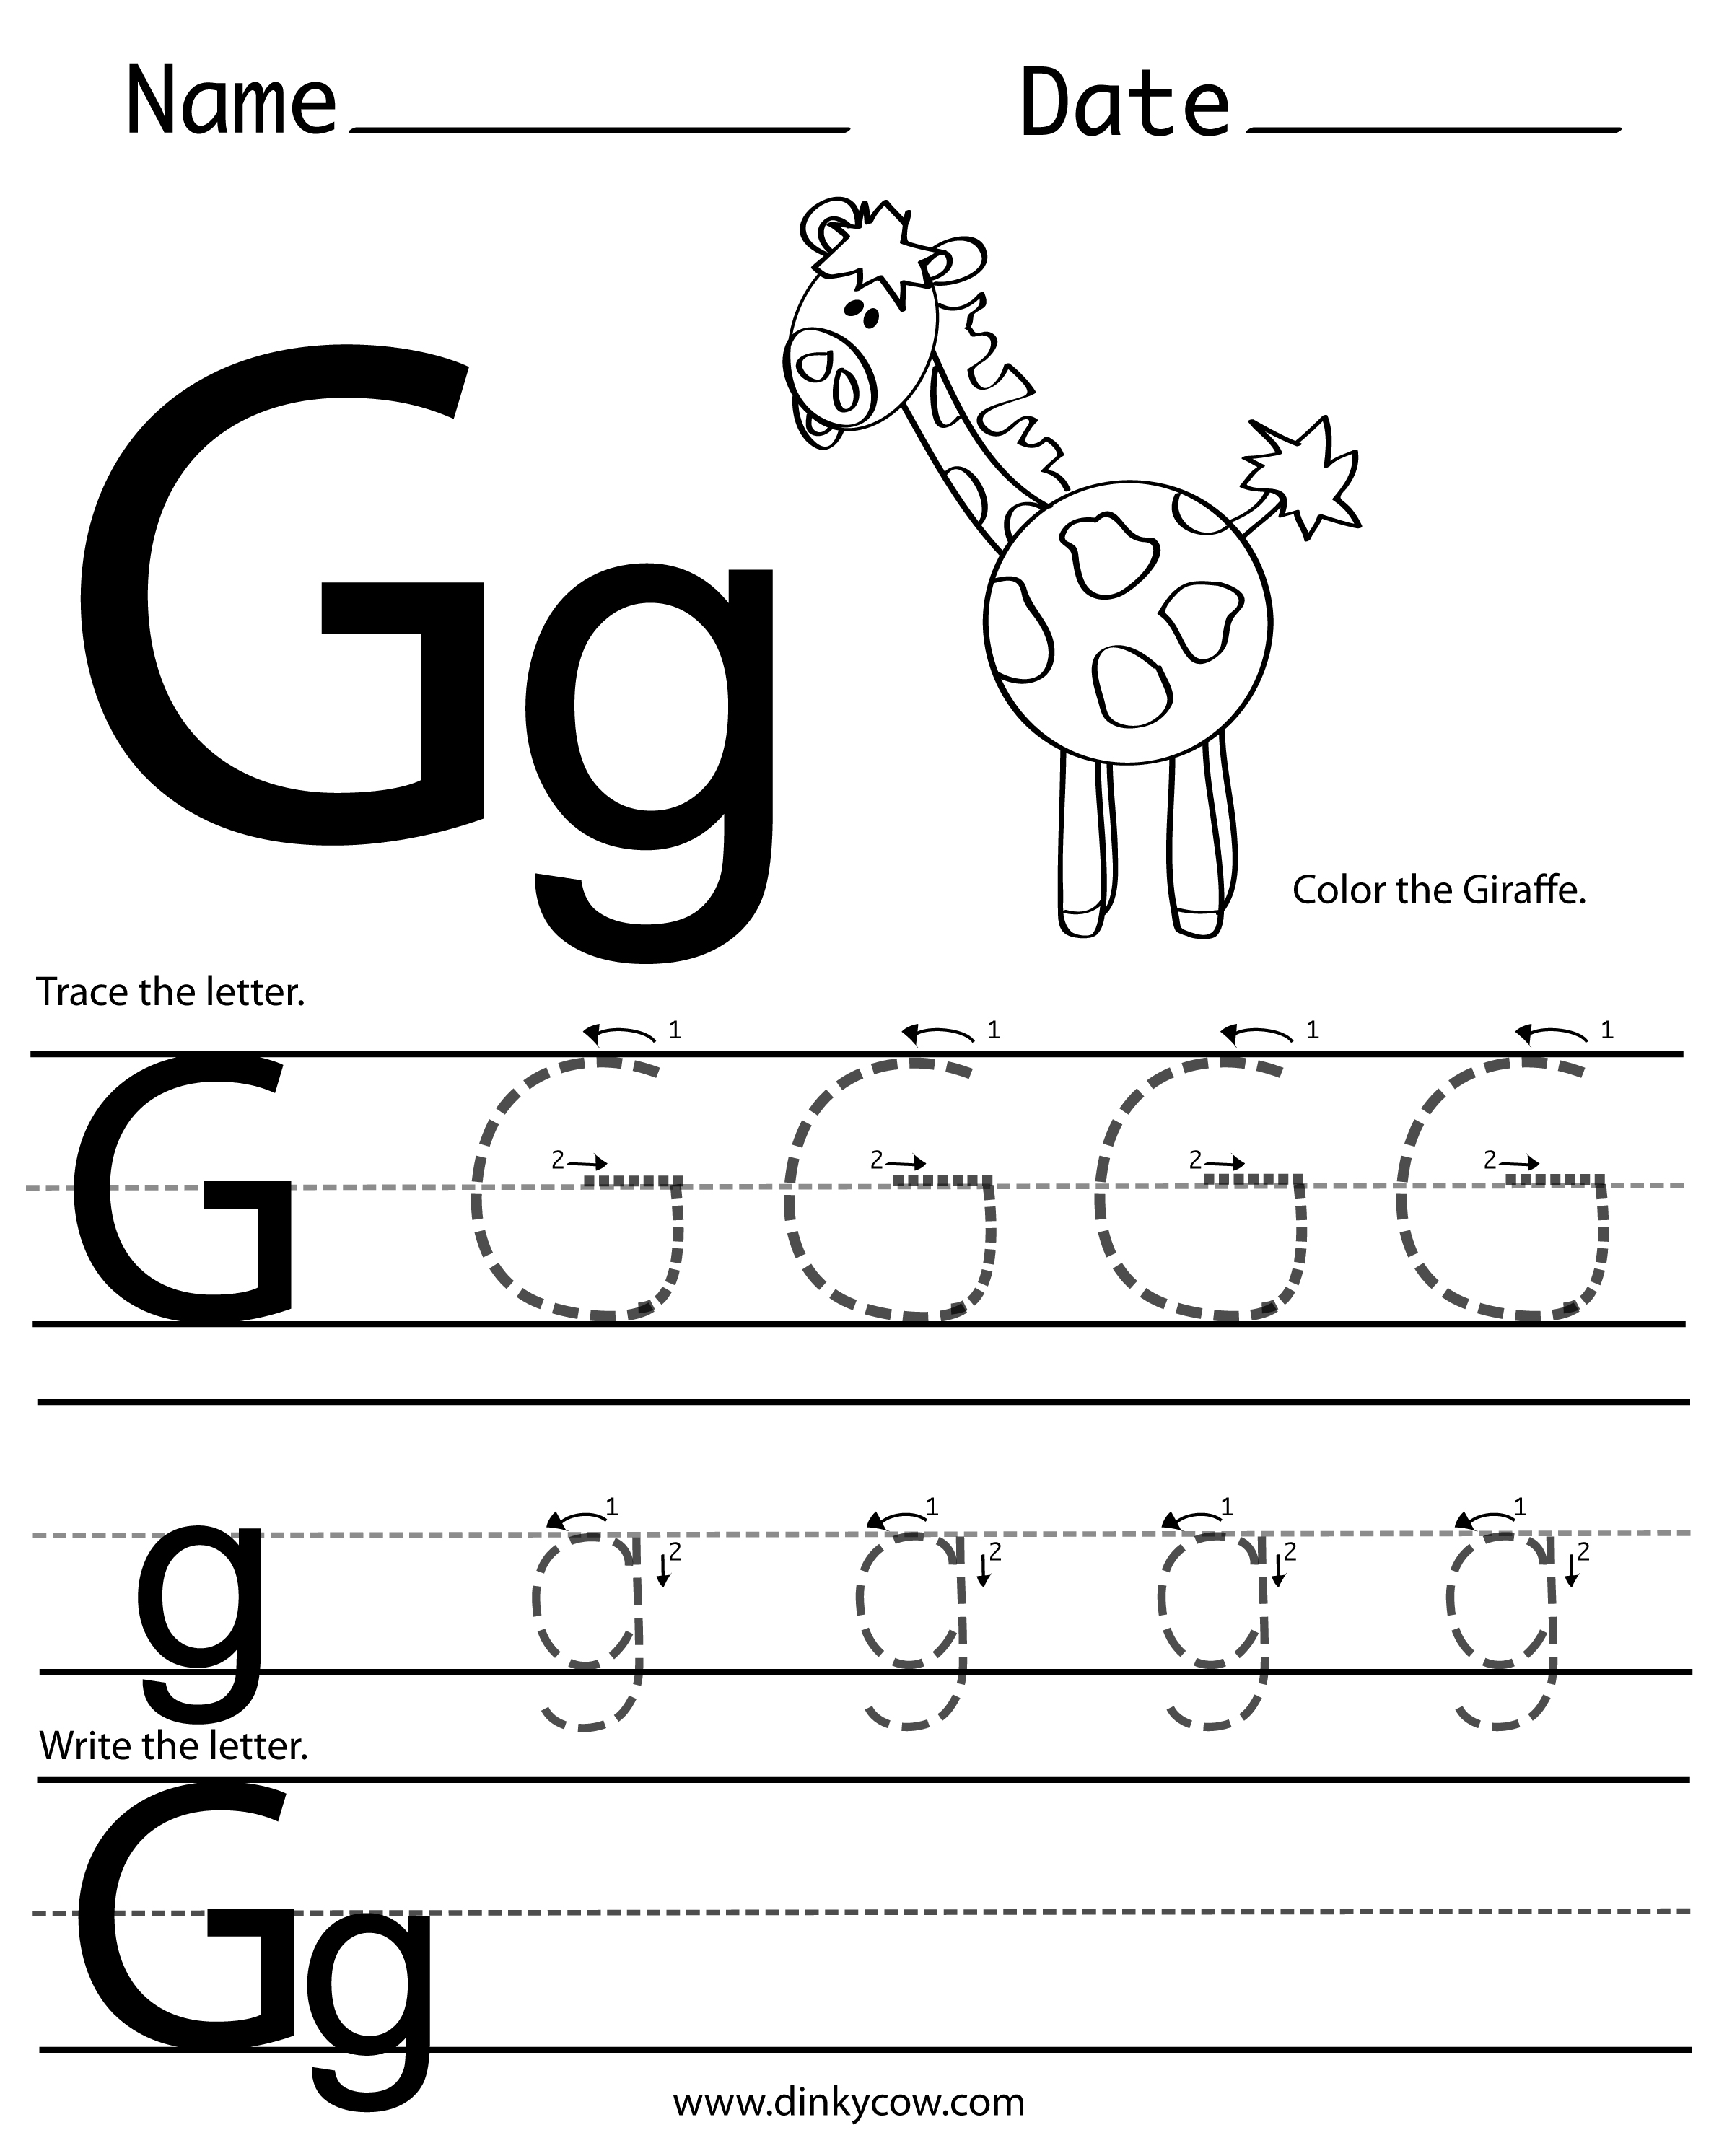 Letter G Worksheets letter g worksheets for preschool with – G Worksheets for Kindergarten